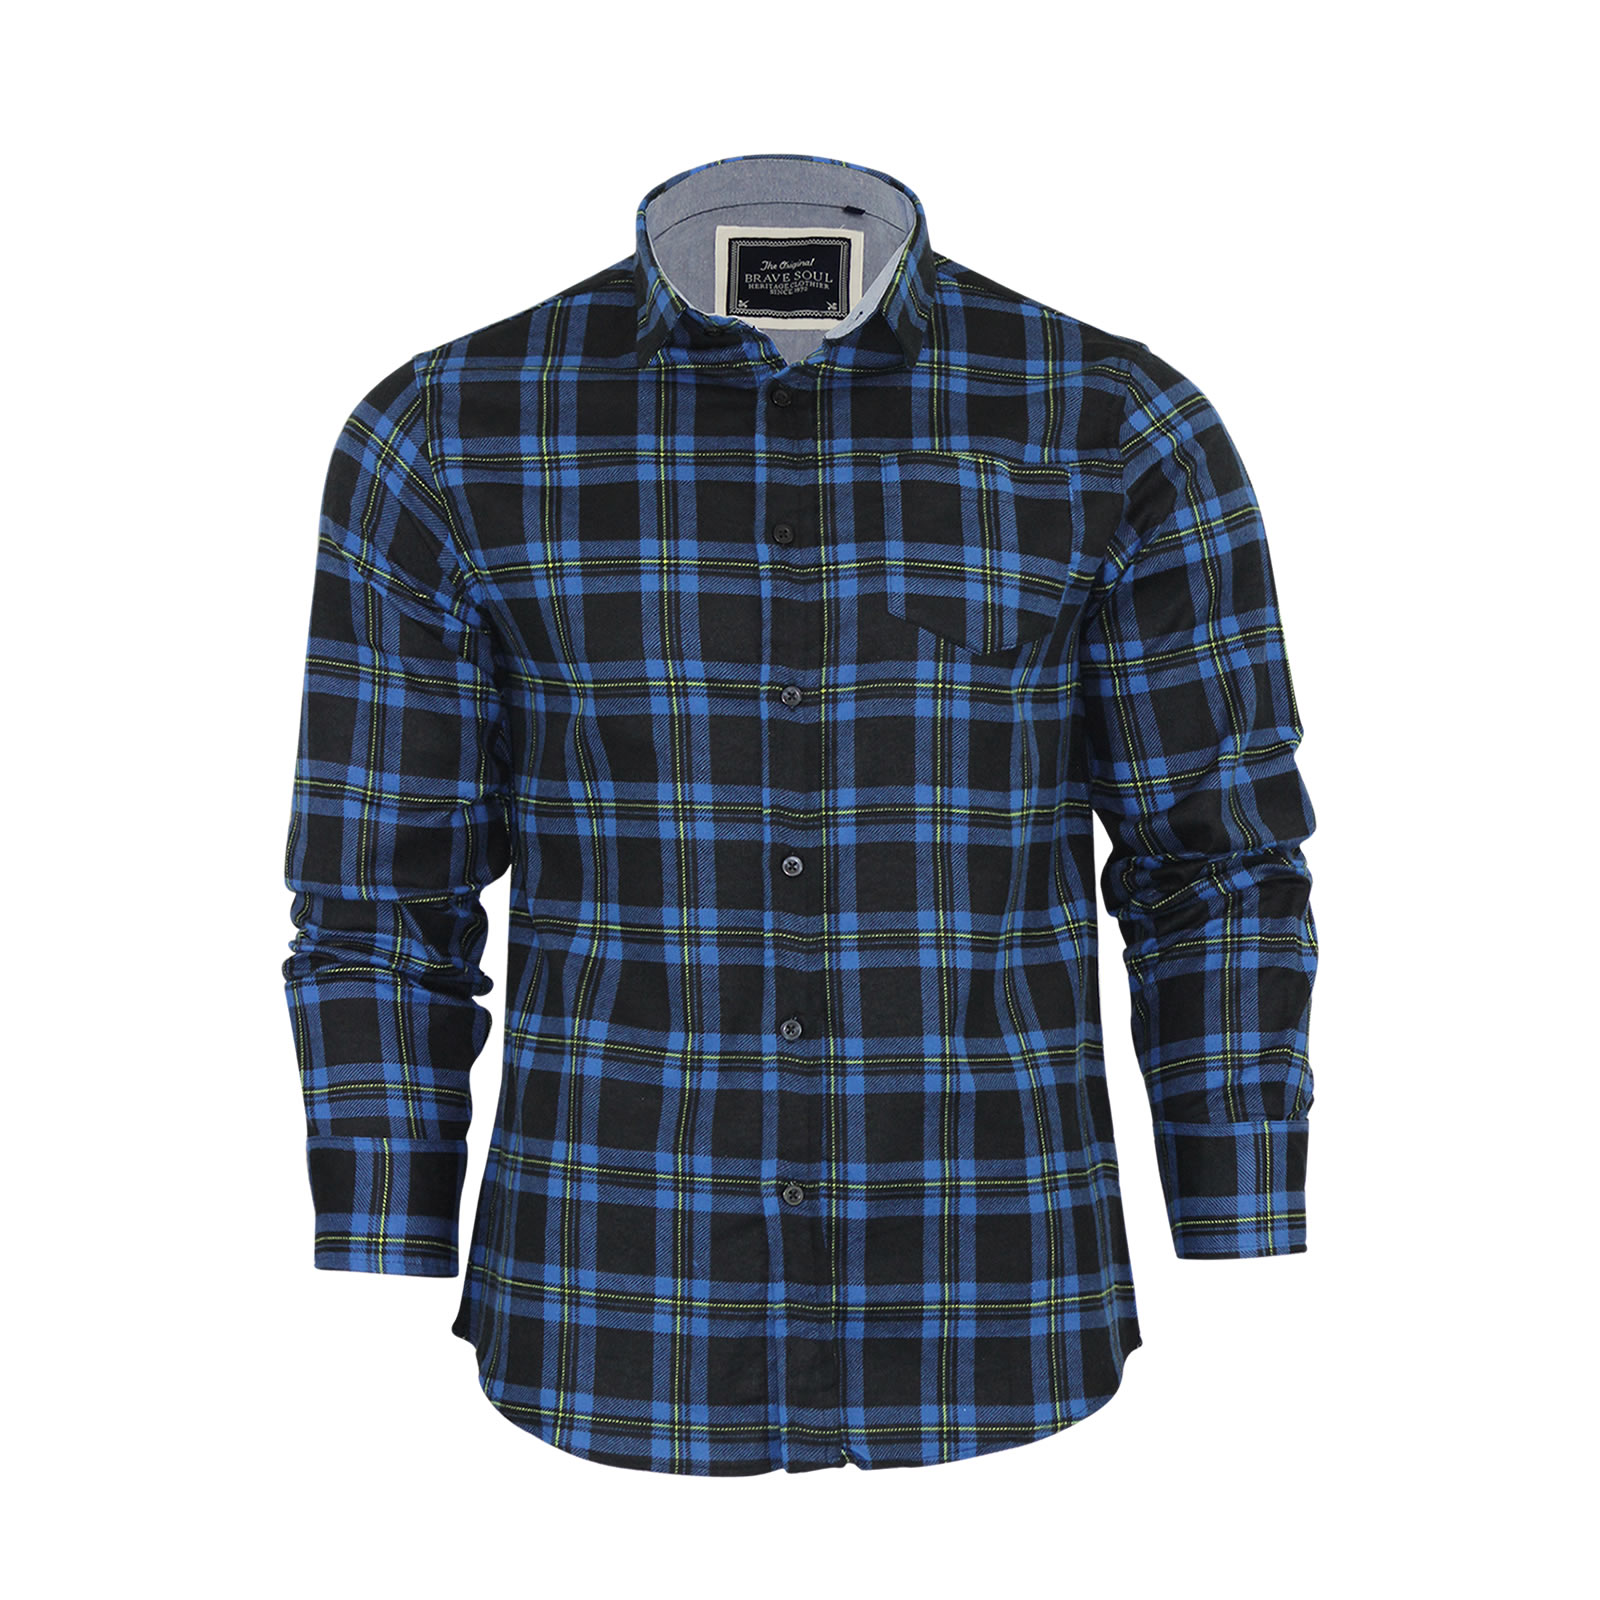 Men's Casual Shirts An indisputable essential, the long sleeve button down shirt is a must-have for any collection. Made with dressy and casual styling, these shirts feature point collars, barrel button cuffs, patch pockets and logo detailing.